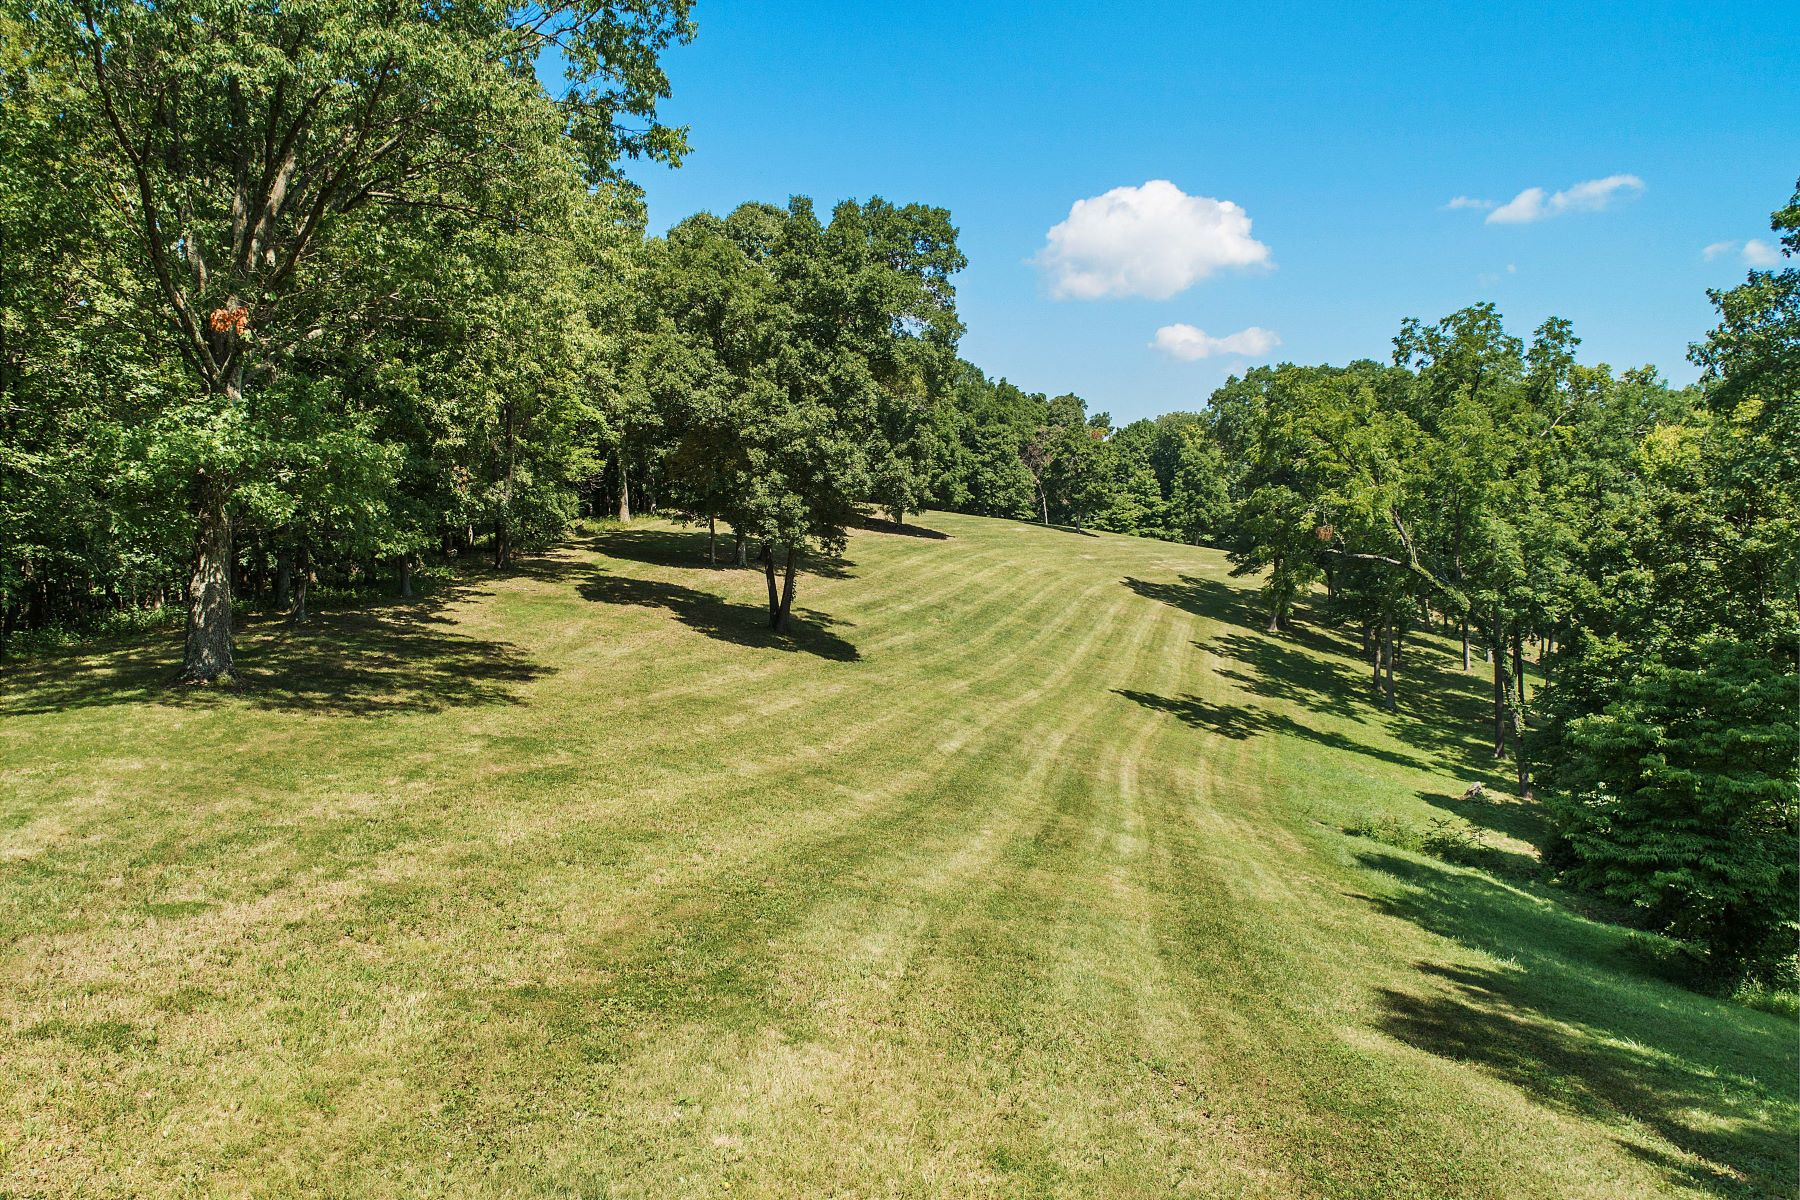 Additional photo for property listing at 19300 Puellman Road, Wildwood, MO 63005 19300 Puellman Road Wildwood, Missouri 63005 United States